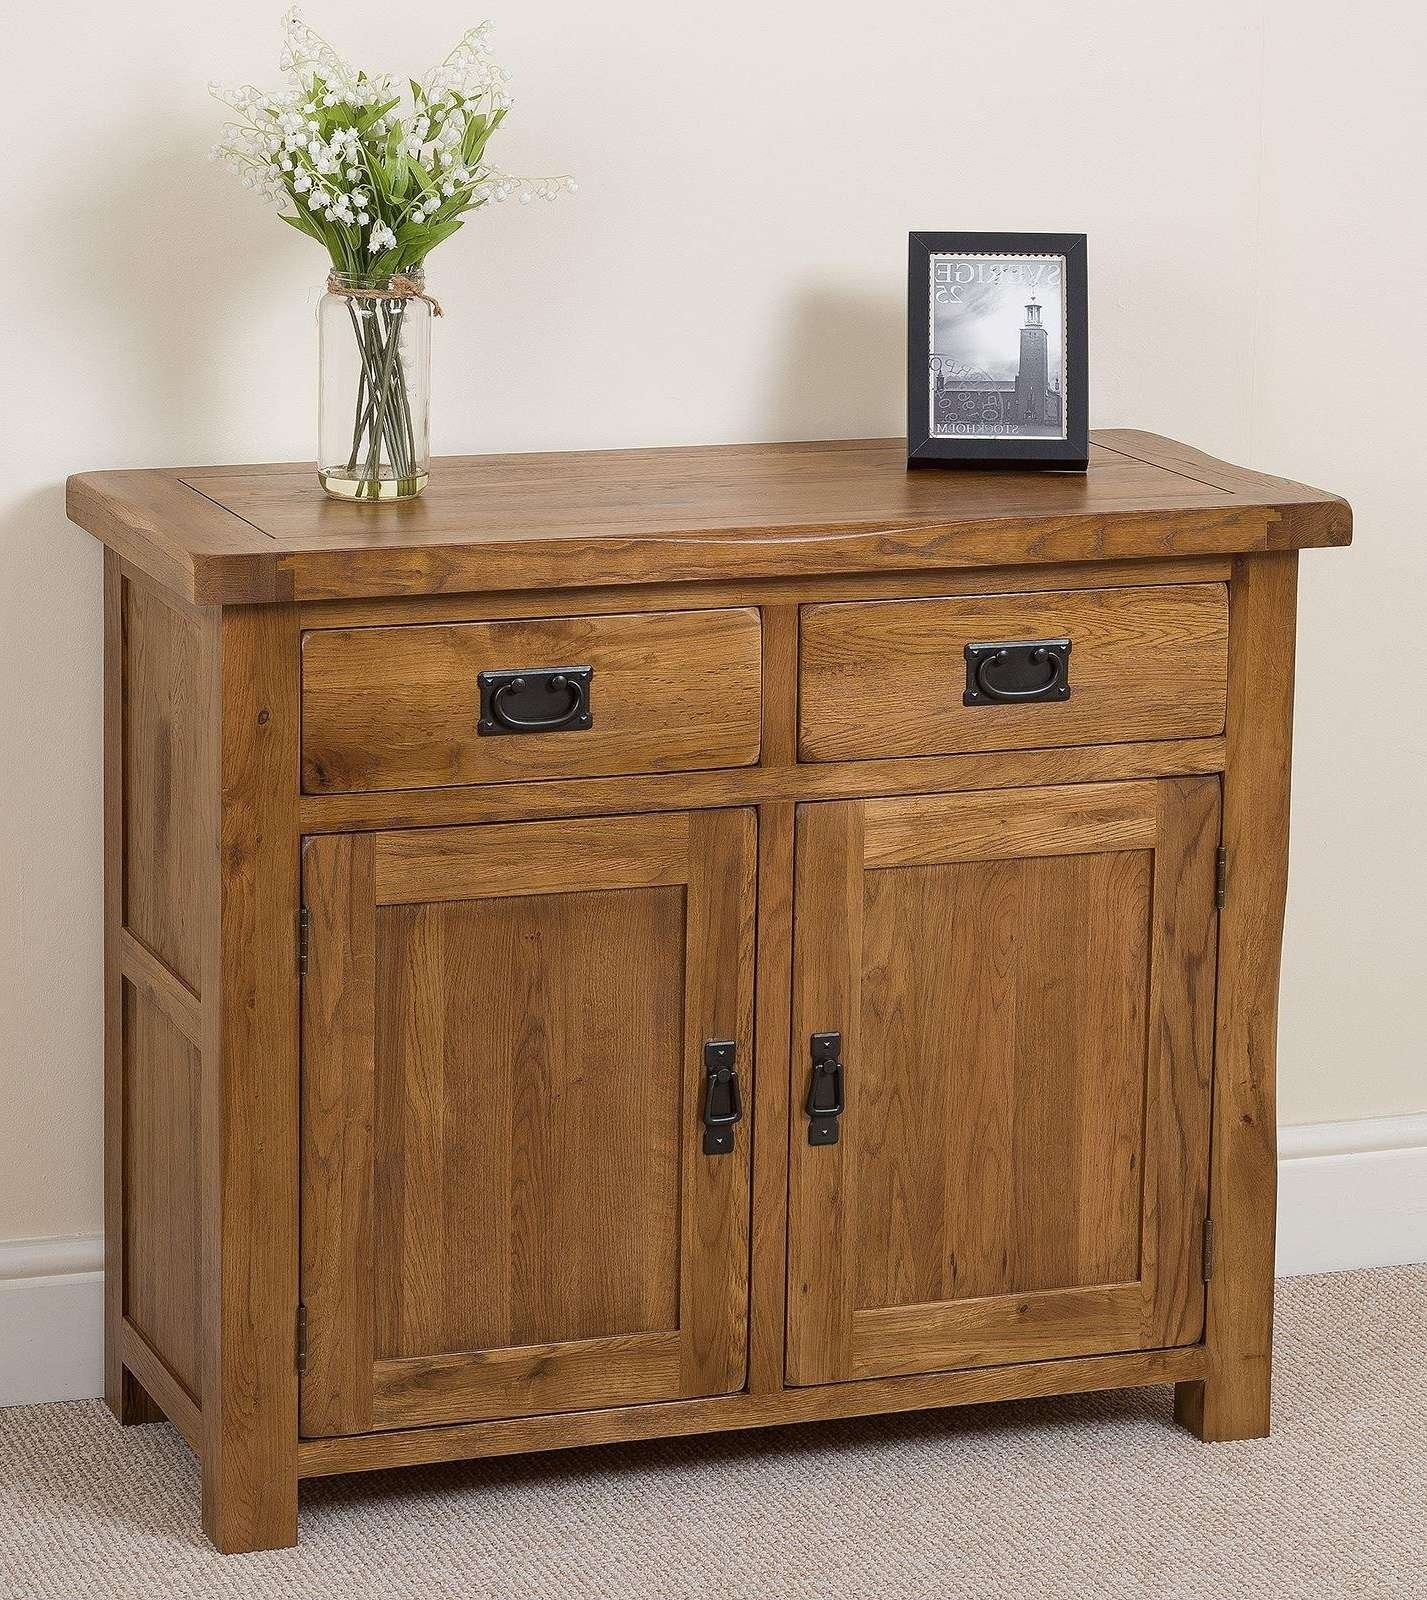 Cotswold Rustic Small Oak Sideboard | Free Uk Delivery With Oak Sideboards (View 2 of 20)